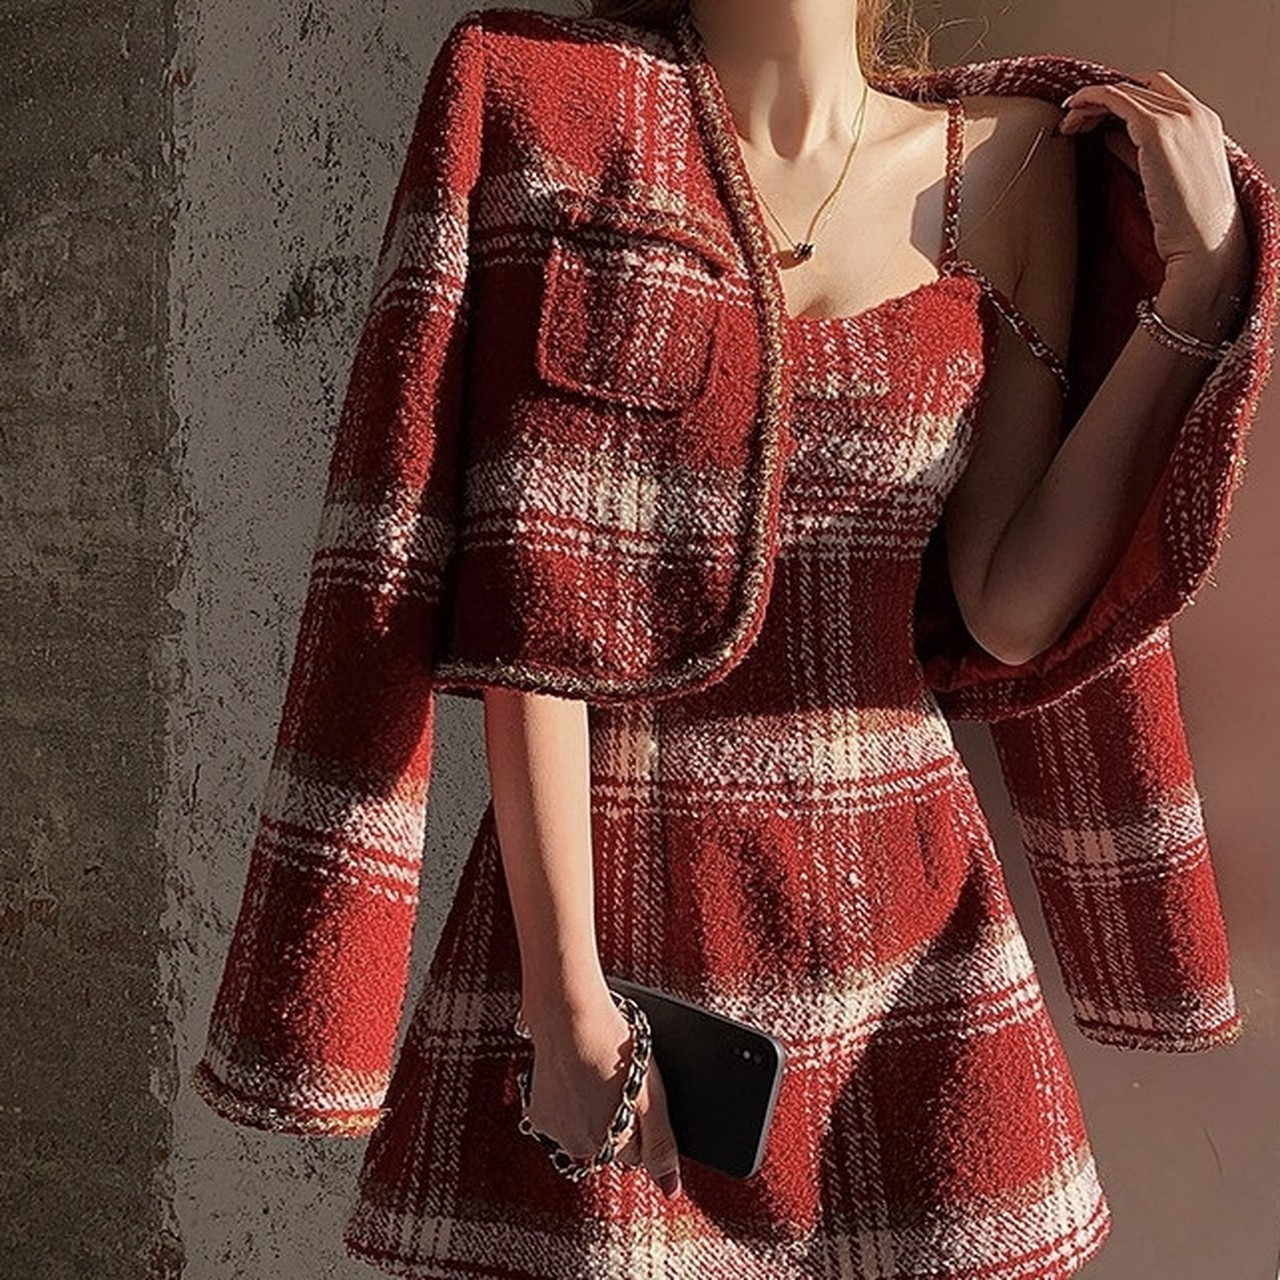 red check dress 2peace